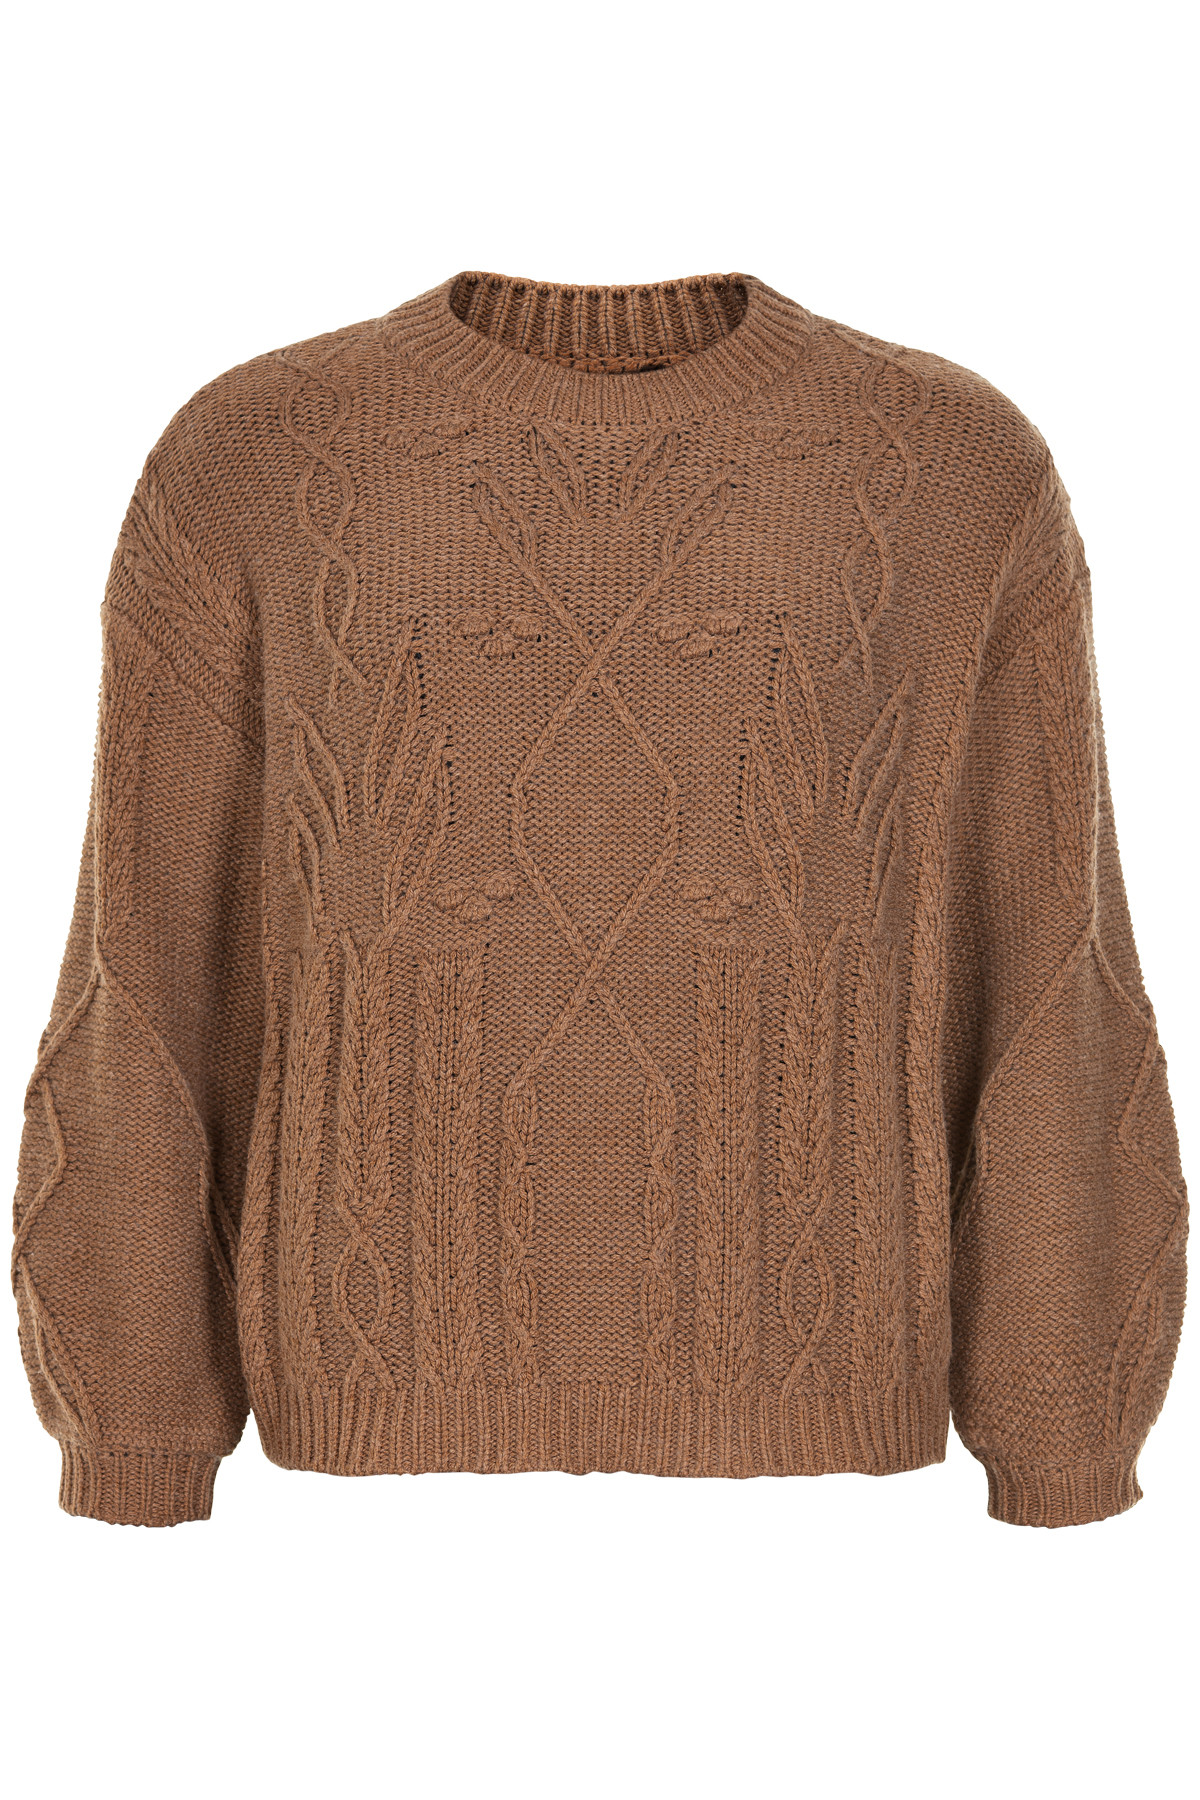 Image of   AND LESS AZENITH PULLOVER 5419205 (Dachshund, XS)